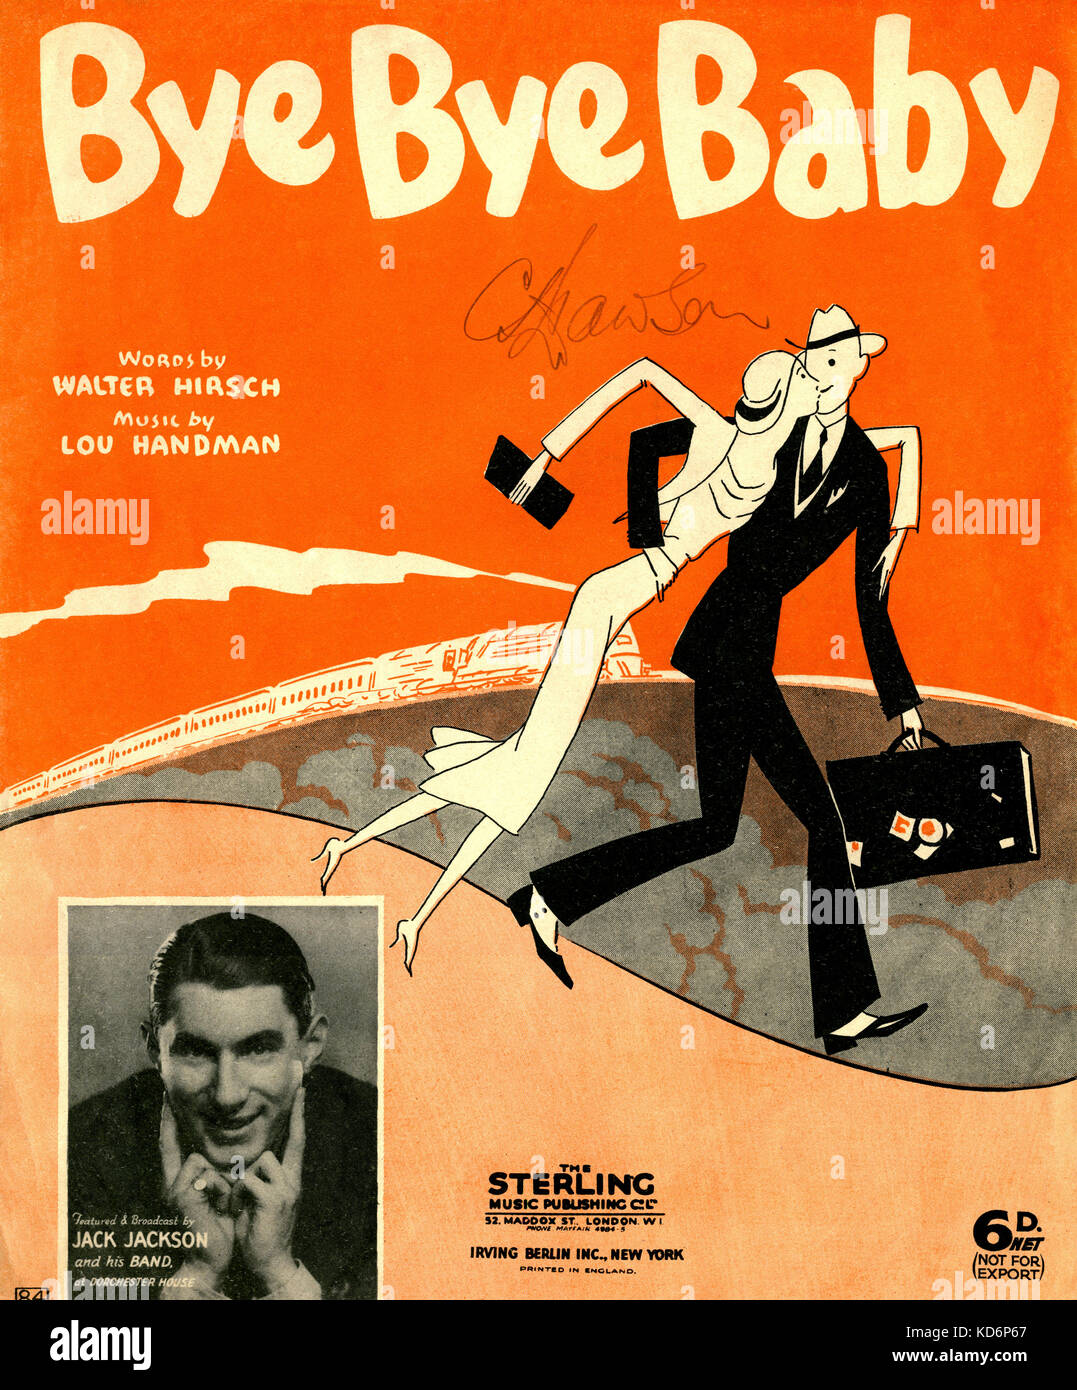 'Bye Bye Baby'  score cover.  written by Walter Hirsch and composed by Lou Handman, with illustration showing - Stock Image